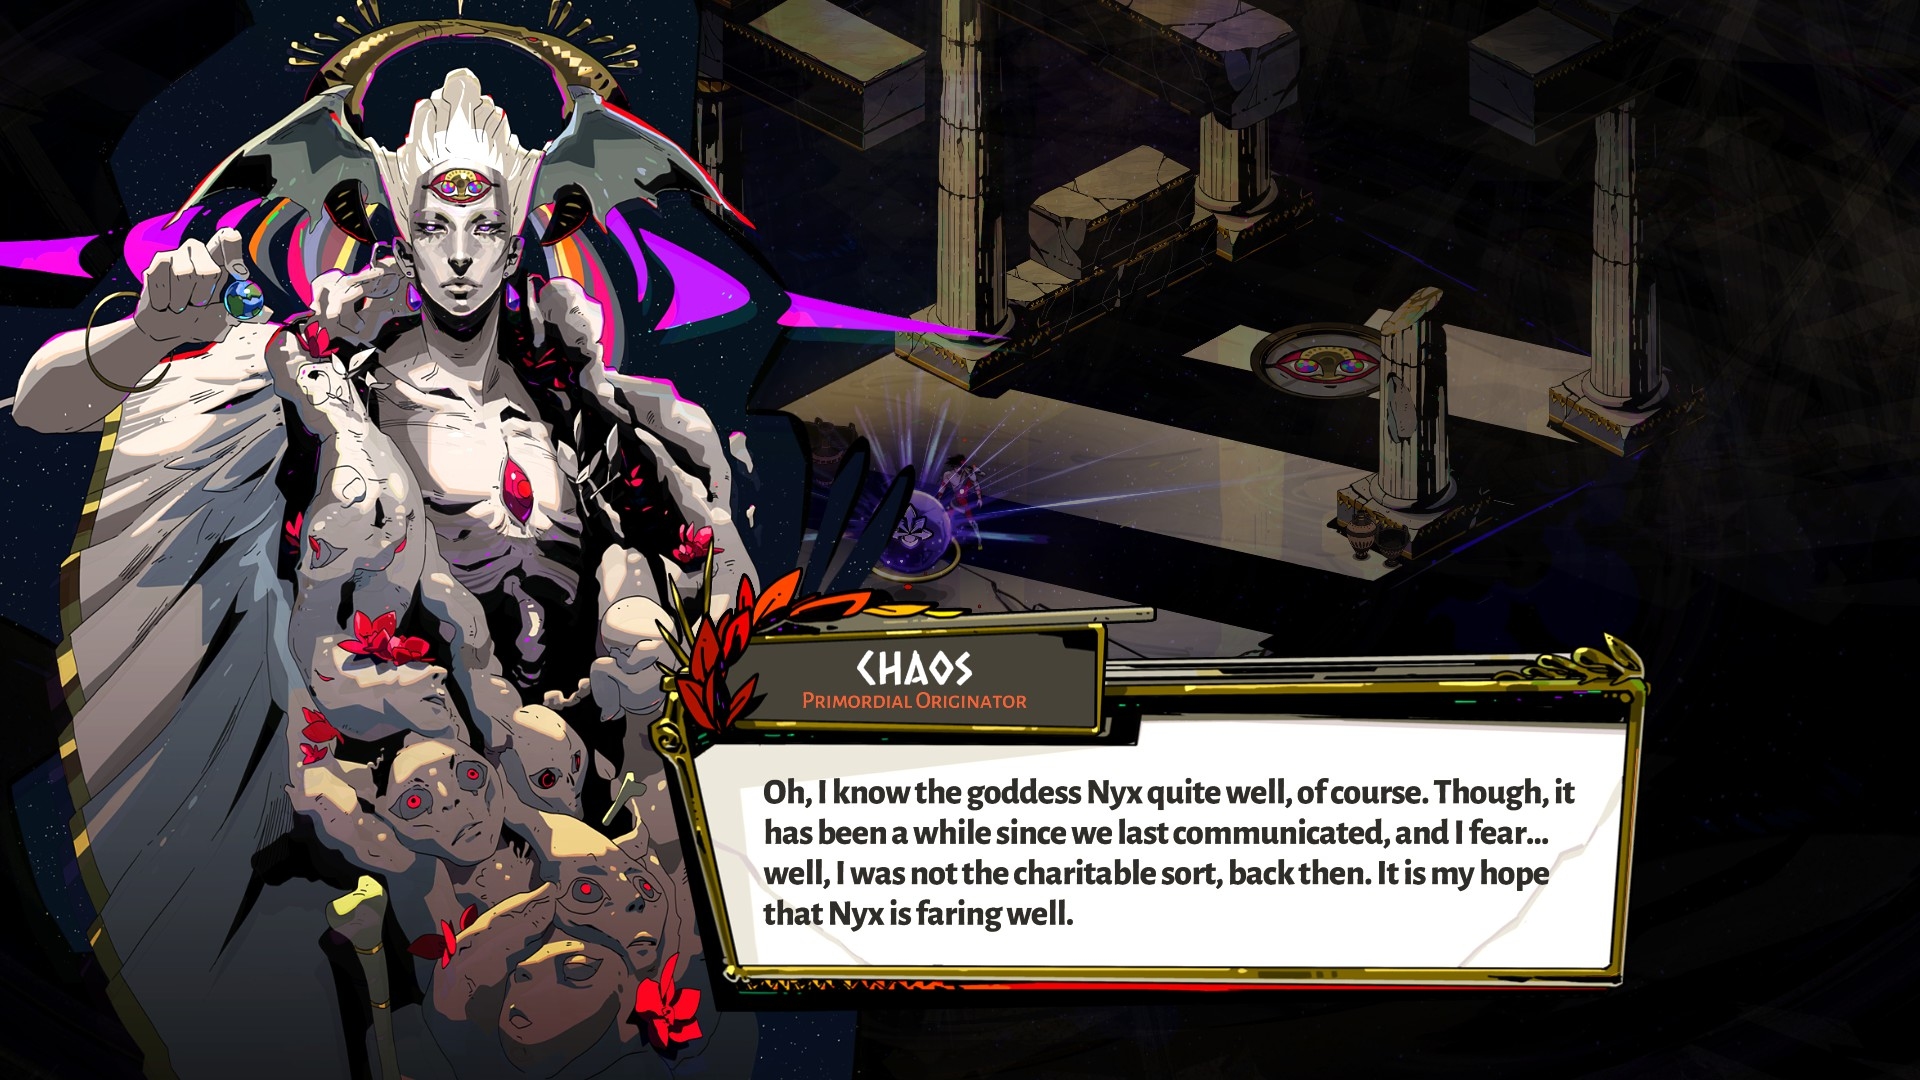 Image of Chaos from Hades, talking about Nyx.